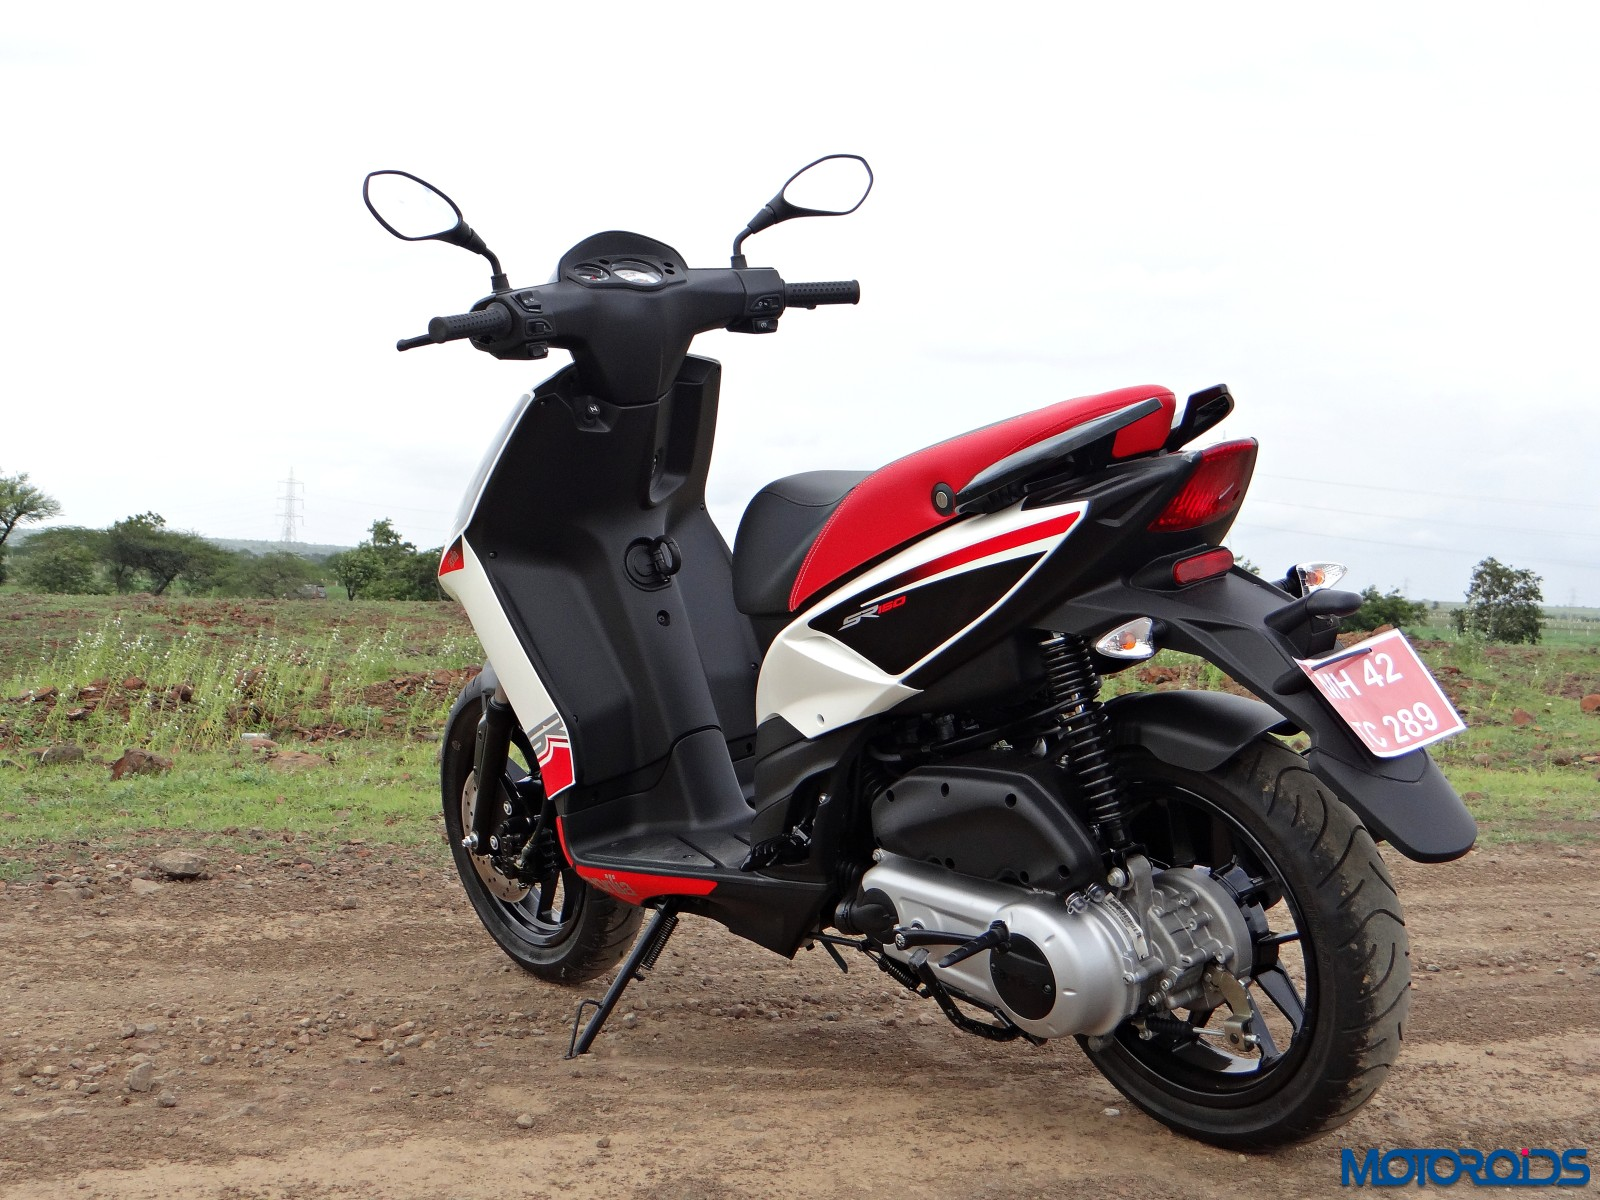 Aprilia SR 150 Review - Still Shots (19)